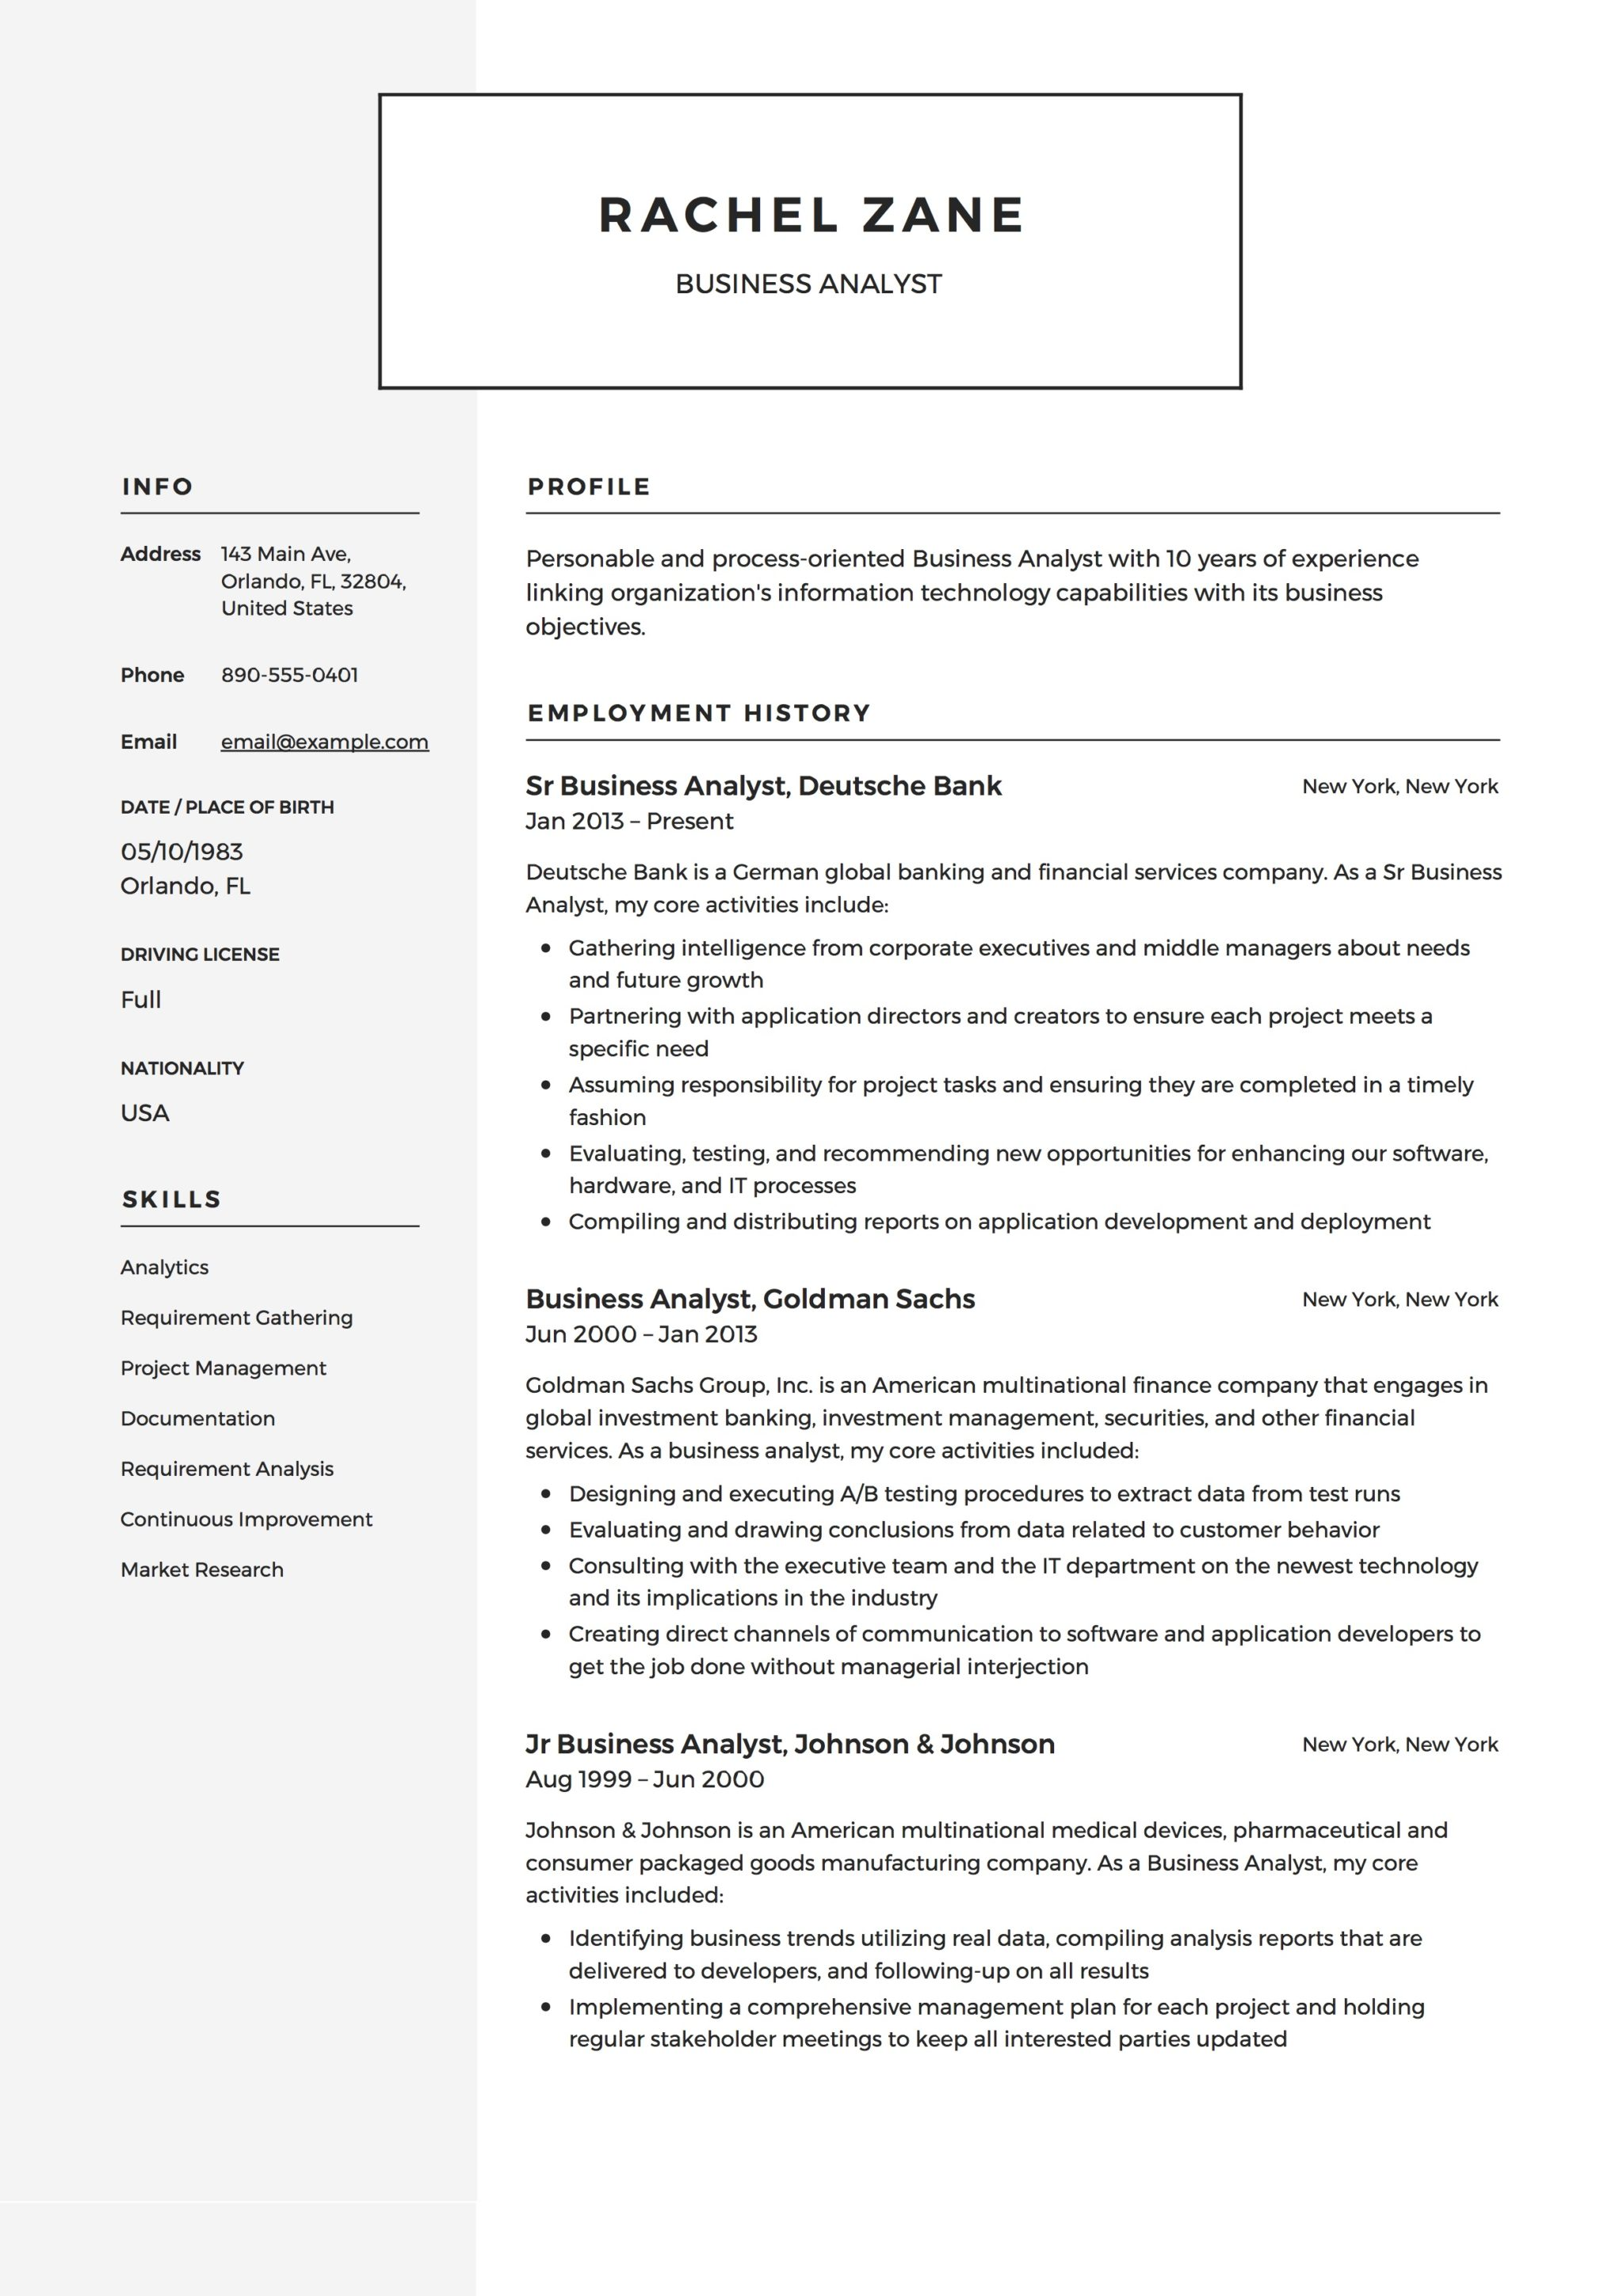 12 business analyst resume samples 2018 free downloads business analyst resume sample friedricerecipe